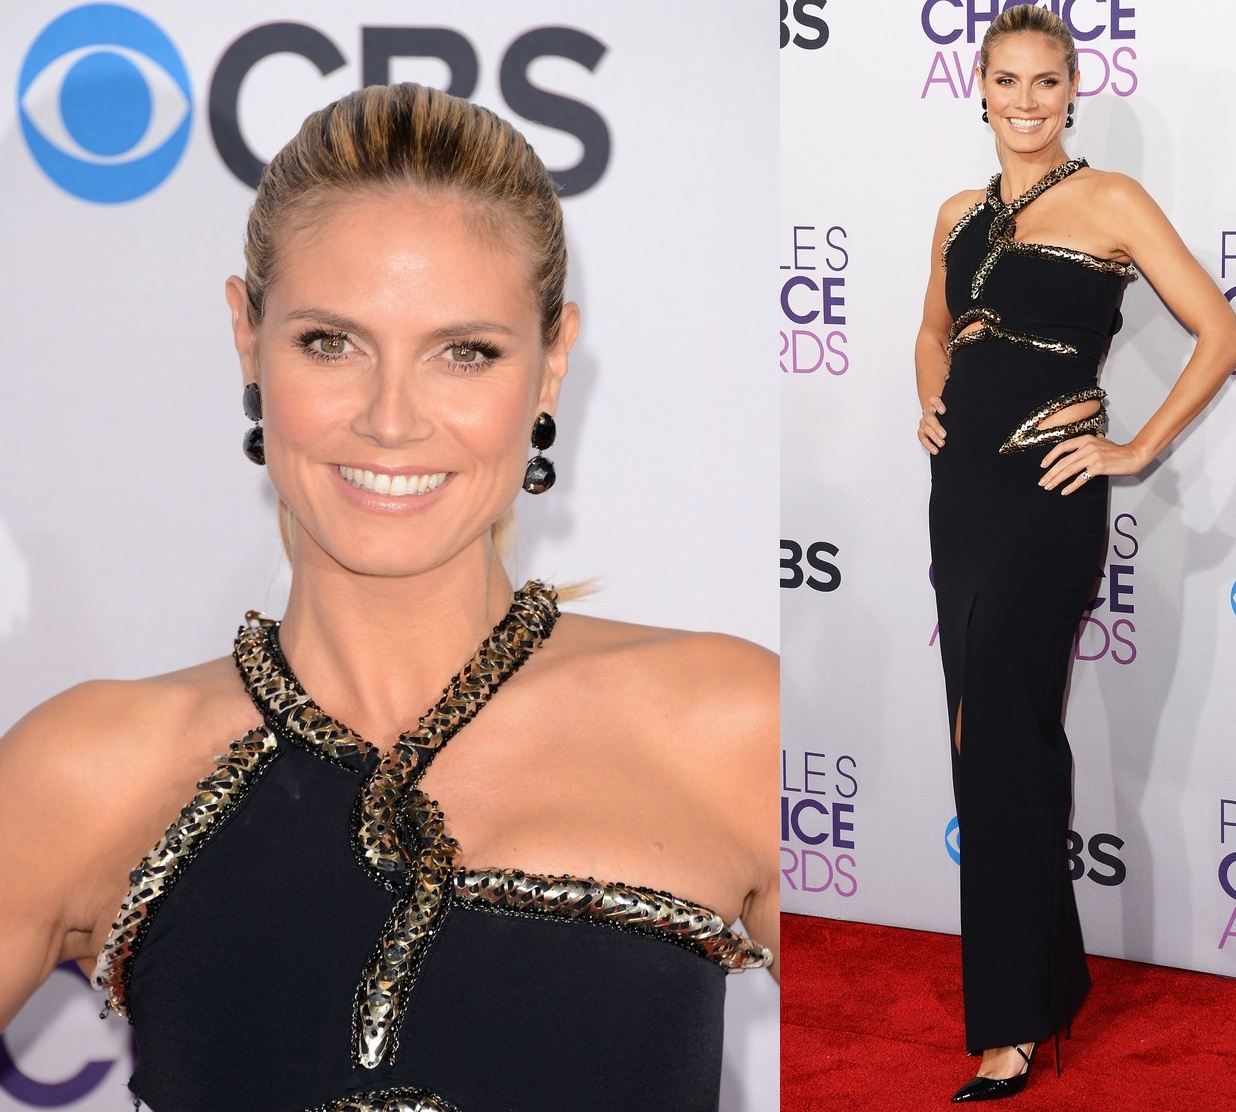 http://4.bp.blogspot.com/-3__CMuYRWLs/UO8psOeViWI/AAAAAAAAPDQ/nbIMSC7azgo/s1600/heidi-klum-peoples-choice-awards-2013-red-carpet-02.jpg